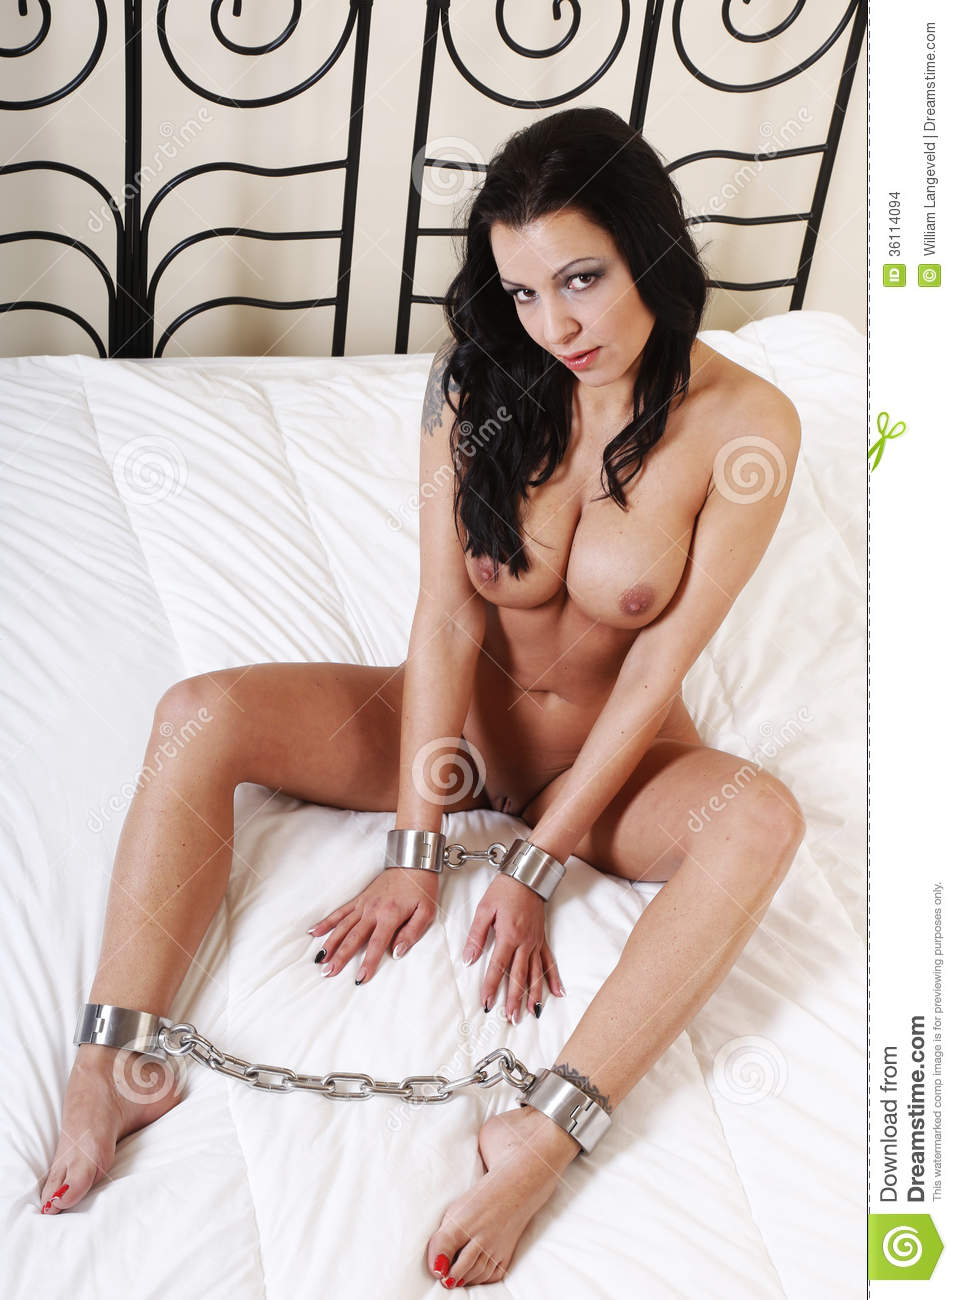 Seems Beautiful naked women bondage can not